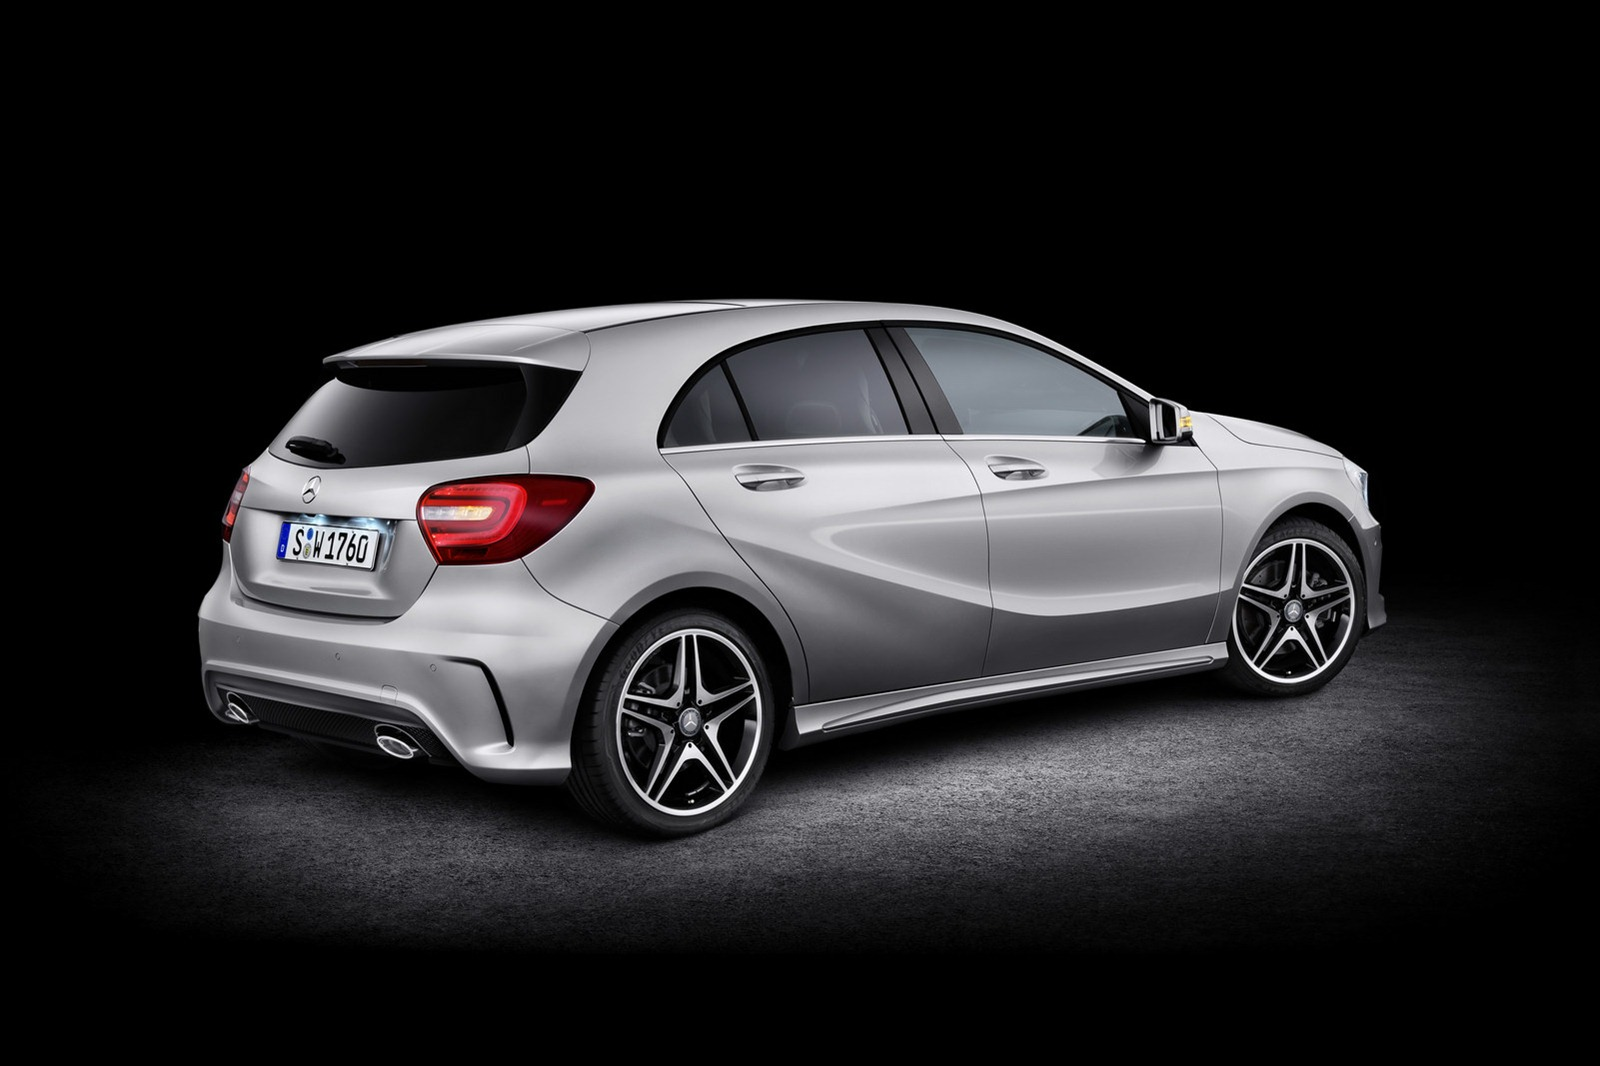 2012 mercedes benz a class new photos released autoevolution. Black Bedroom Furniture Sets. Home Design Ideas